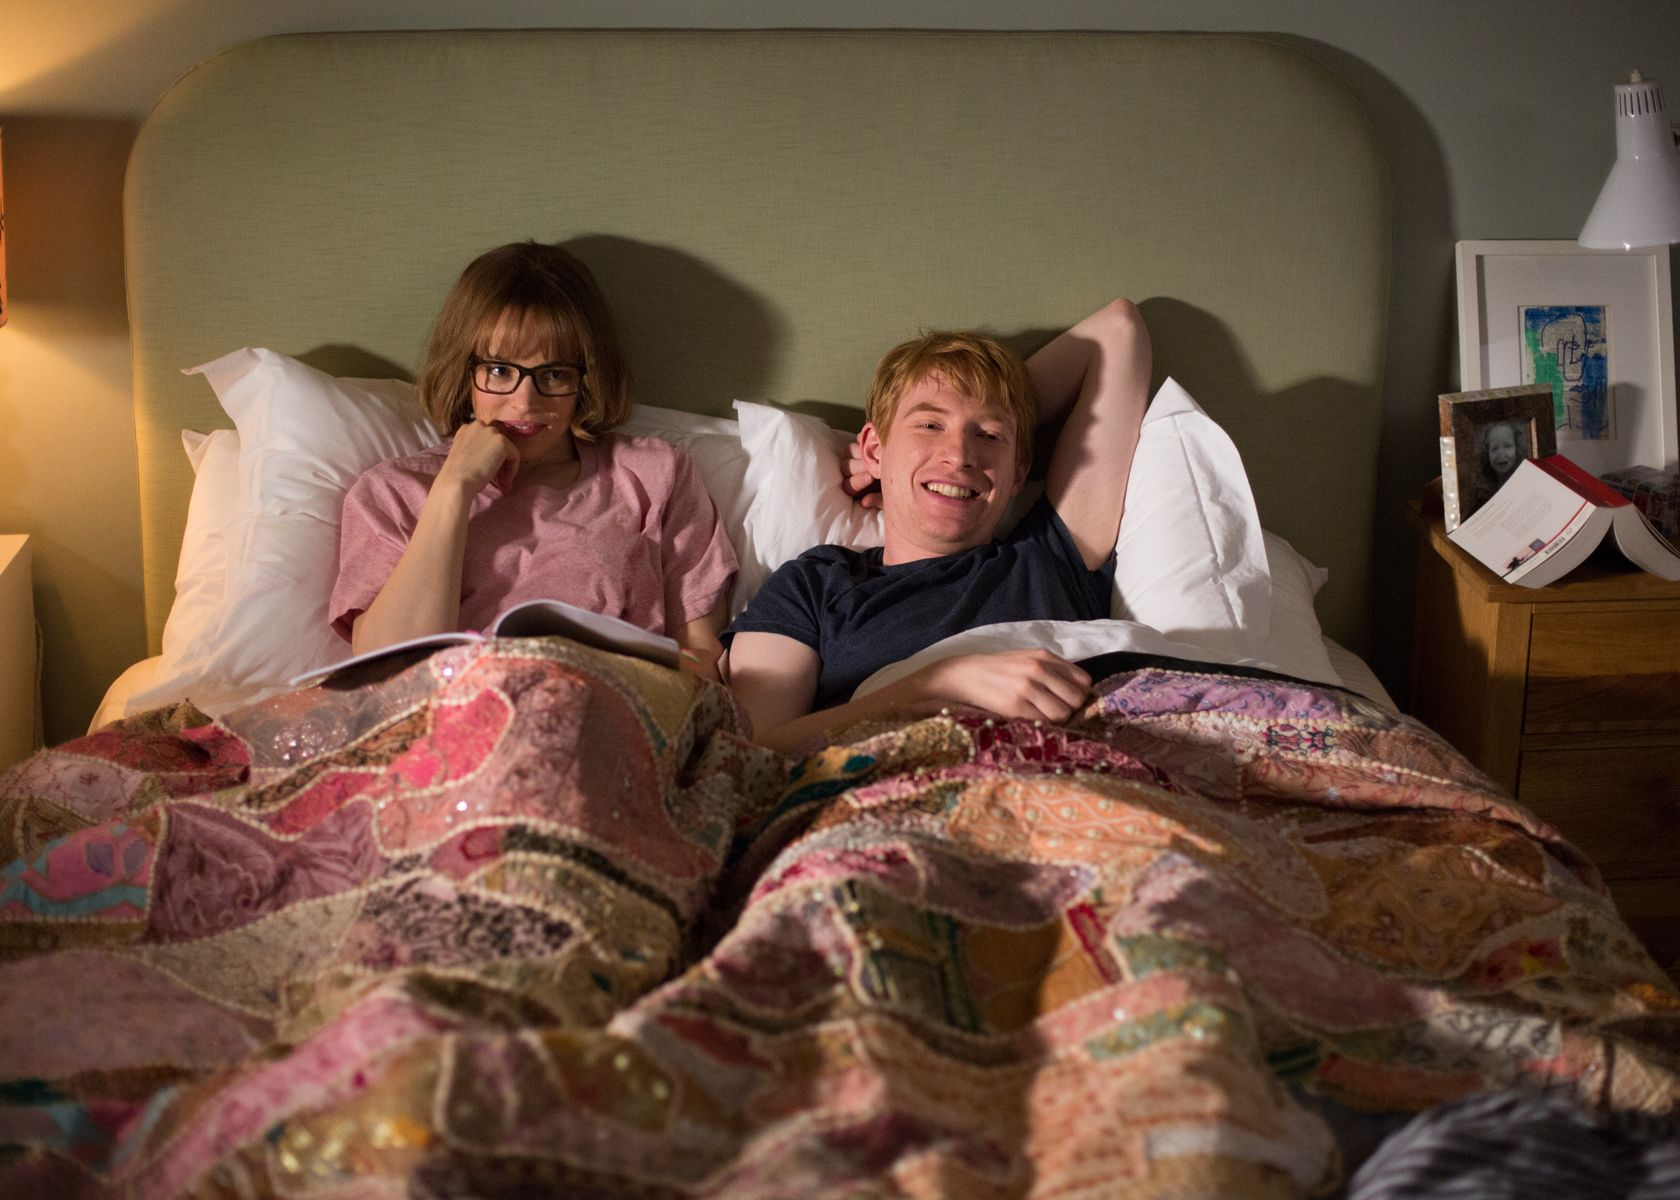 Rachel McAdams and Domhnall Gleeson | About time movie ...